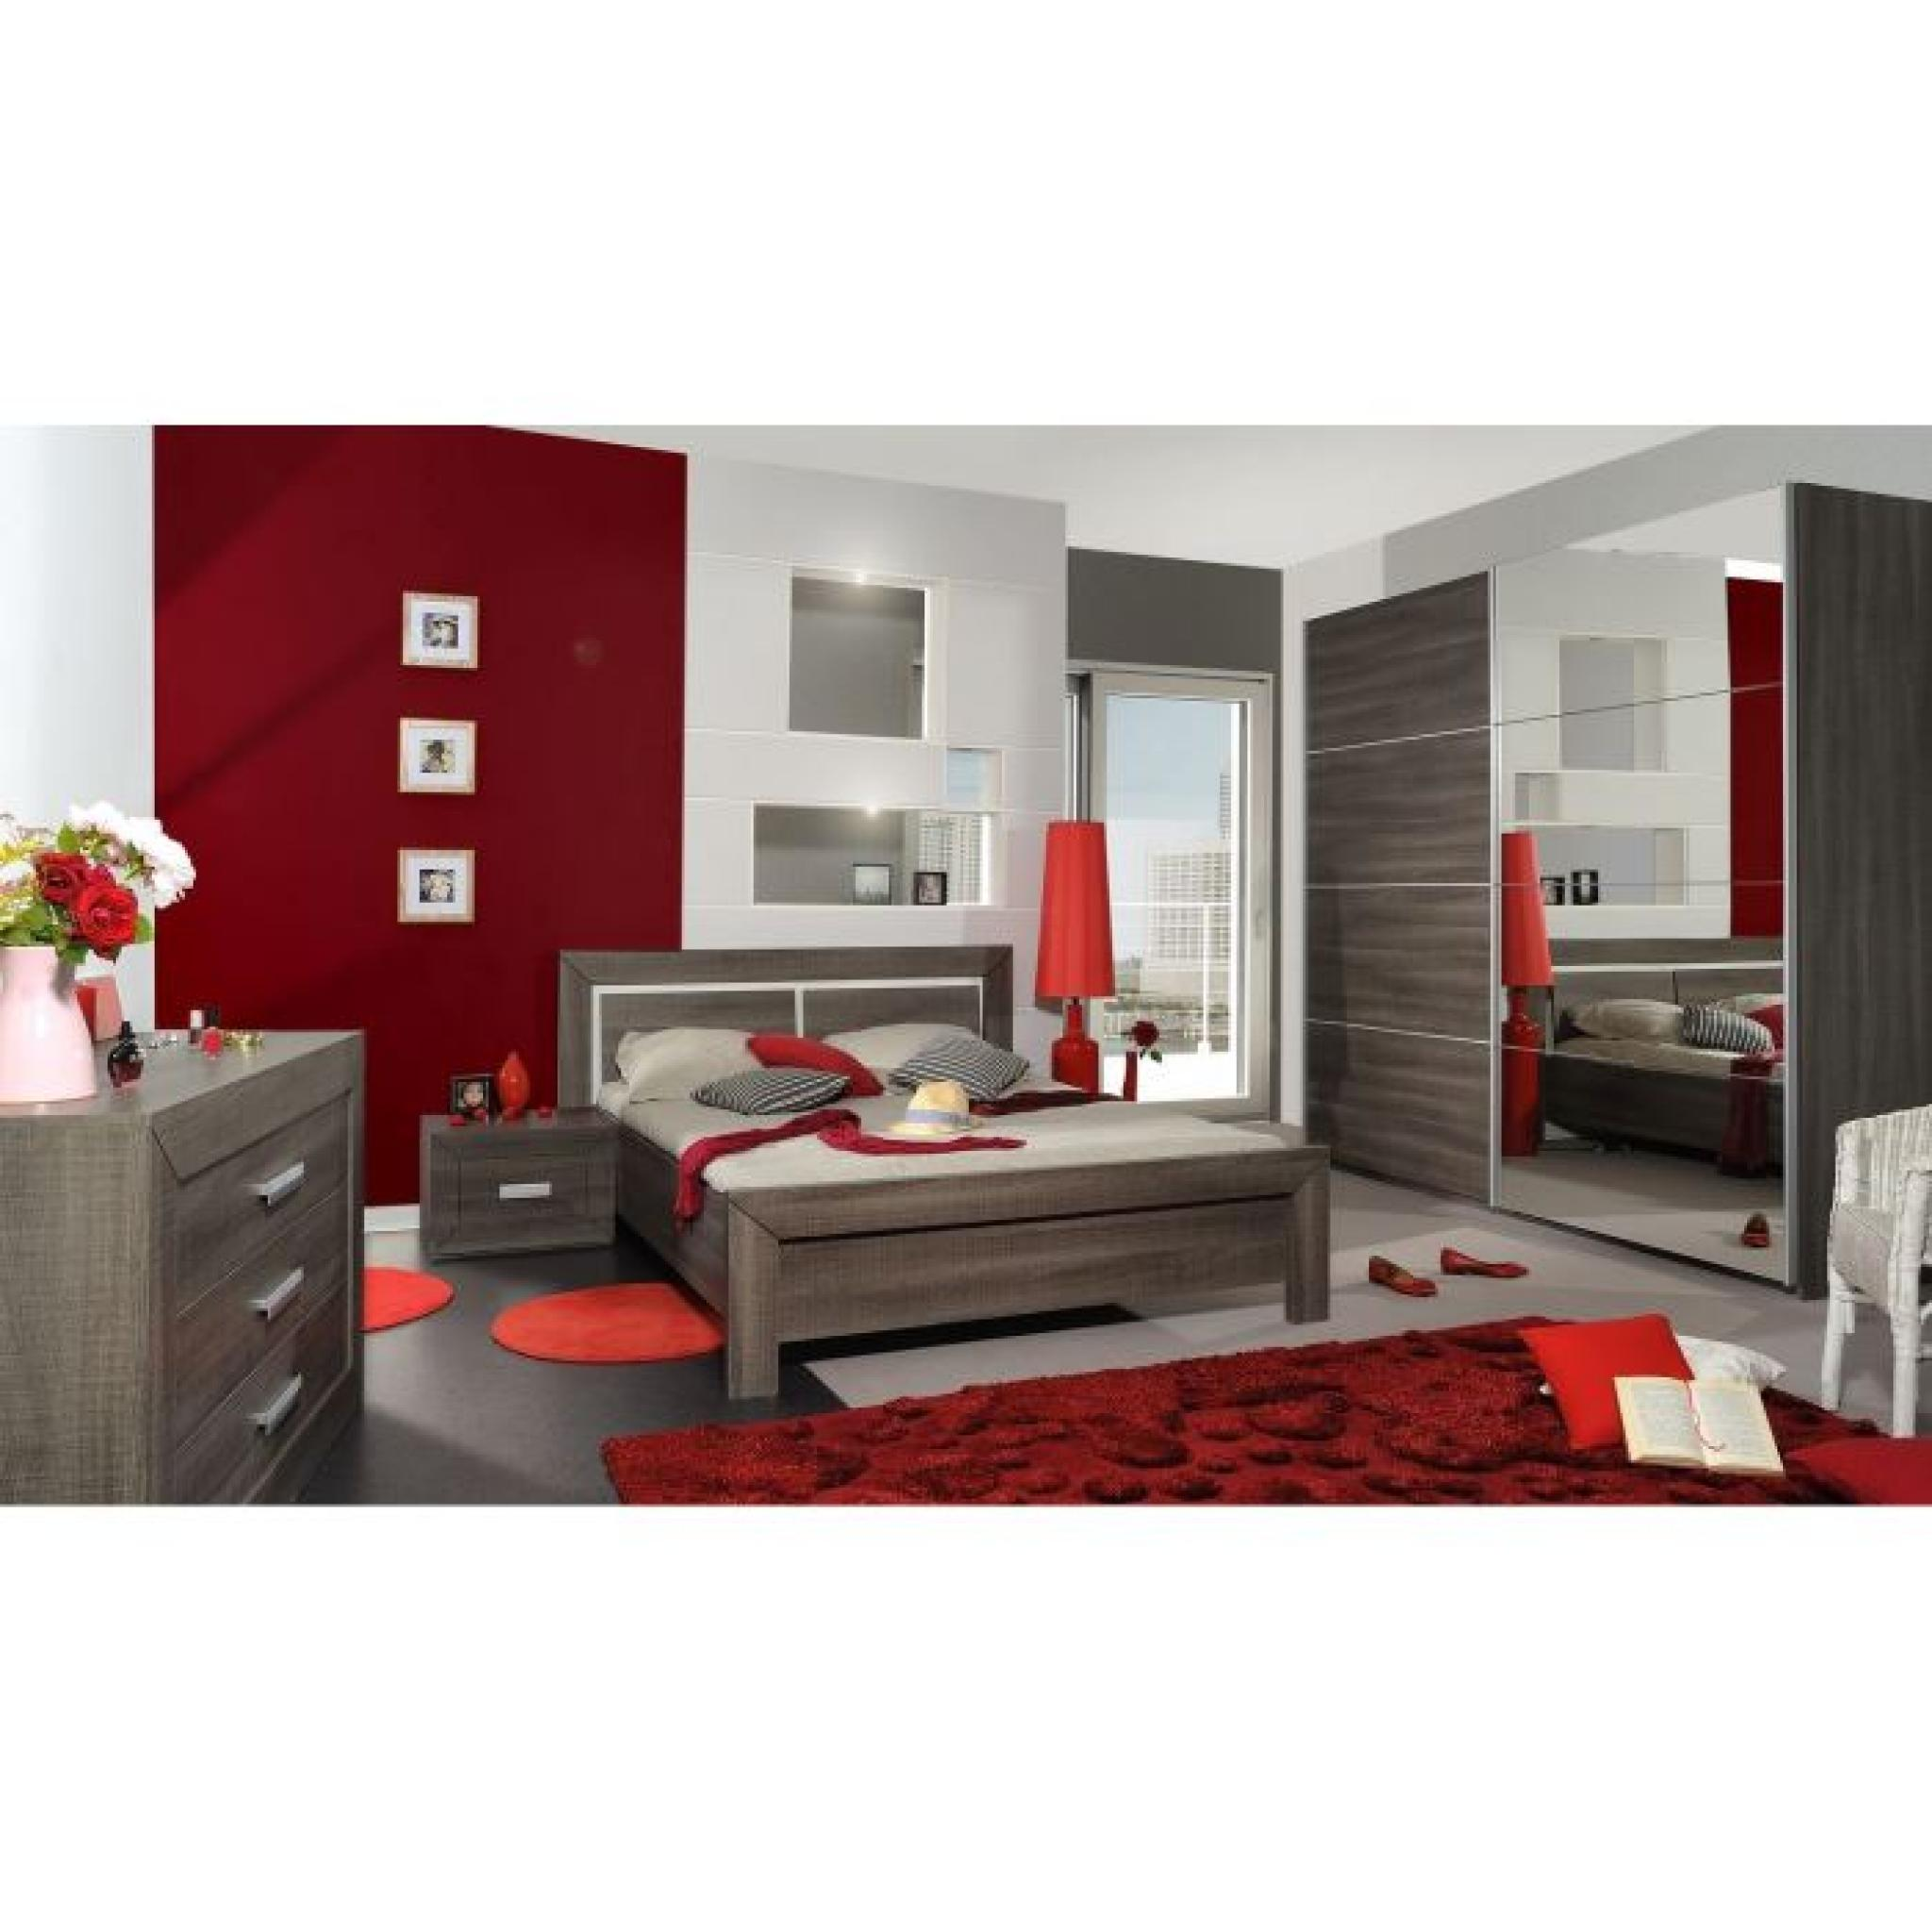 avignon lit adulte 140 x 190 cm coloris bois gris achat vente lit pas cher couleur et. Black Bedroom Furniture Sets. Home Design Ideas